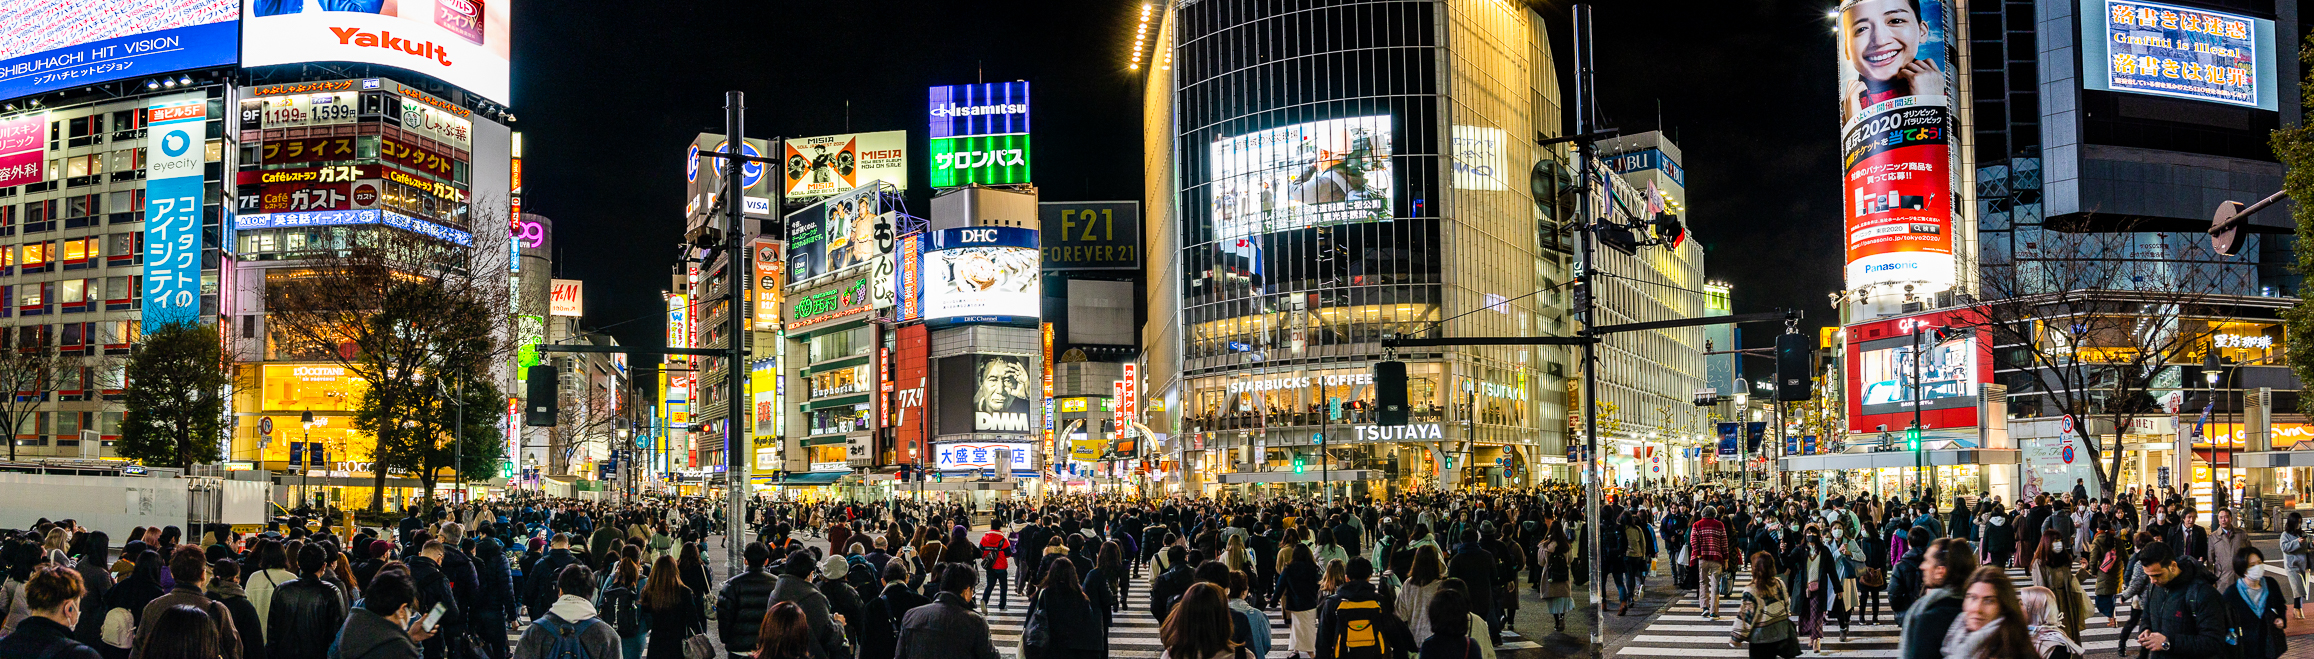 Shibuya Crossing in Japan filled with people in late January 2020, just weeks prior to crux of COVID-19.